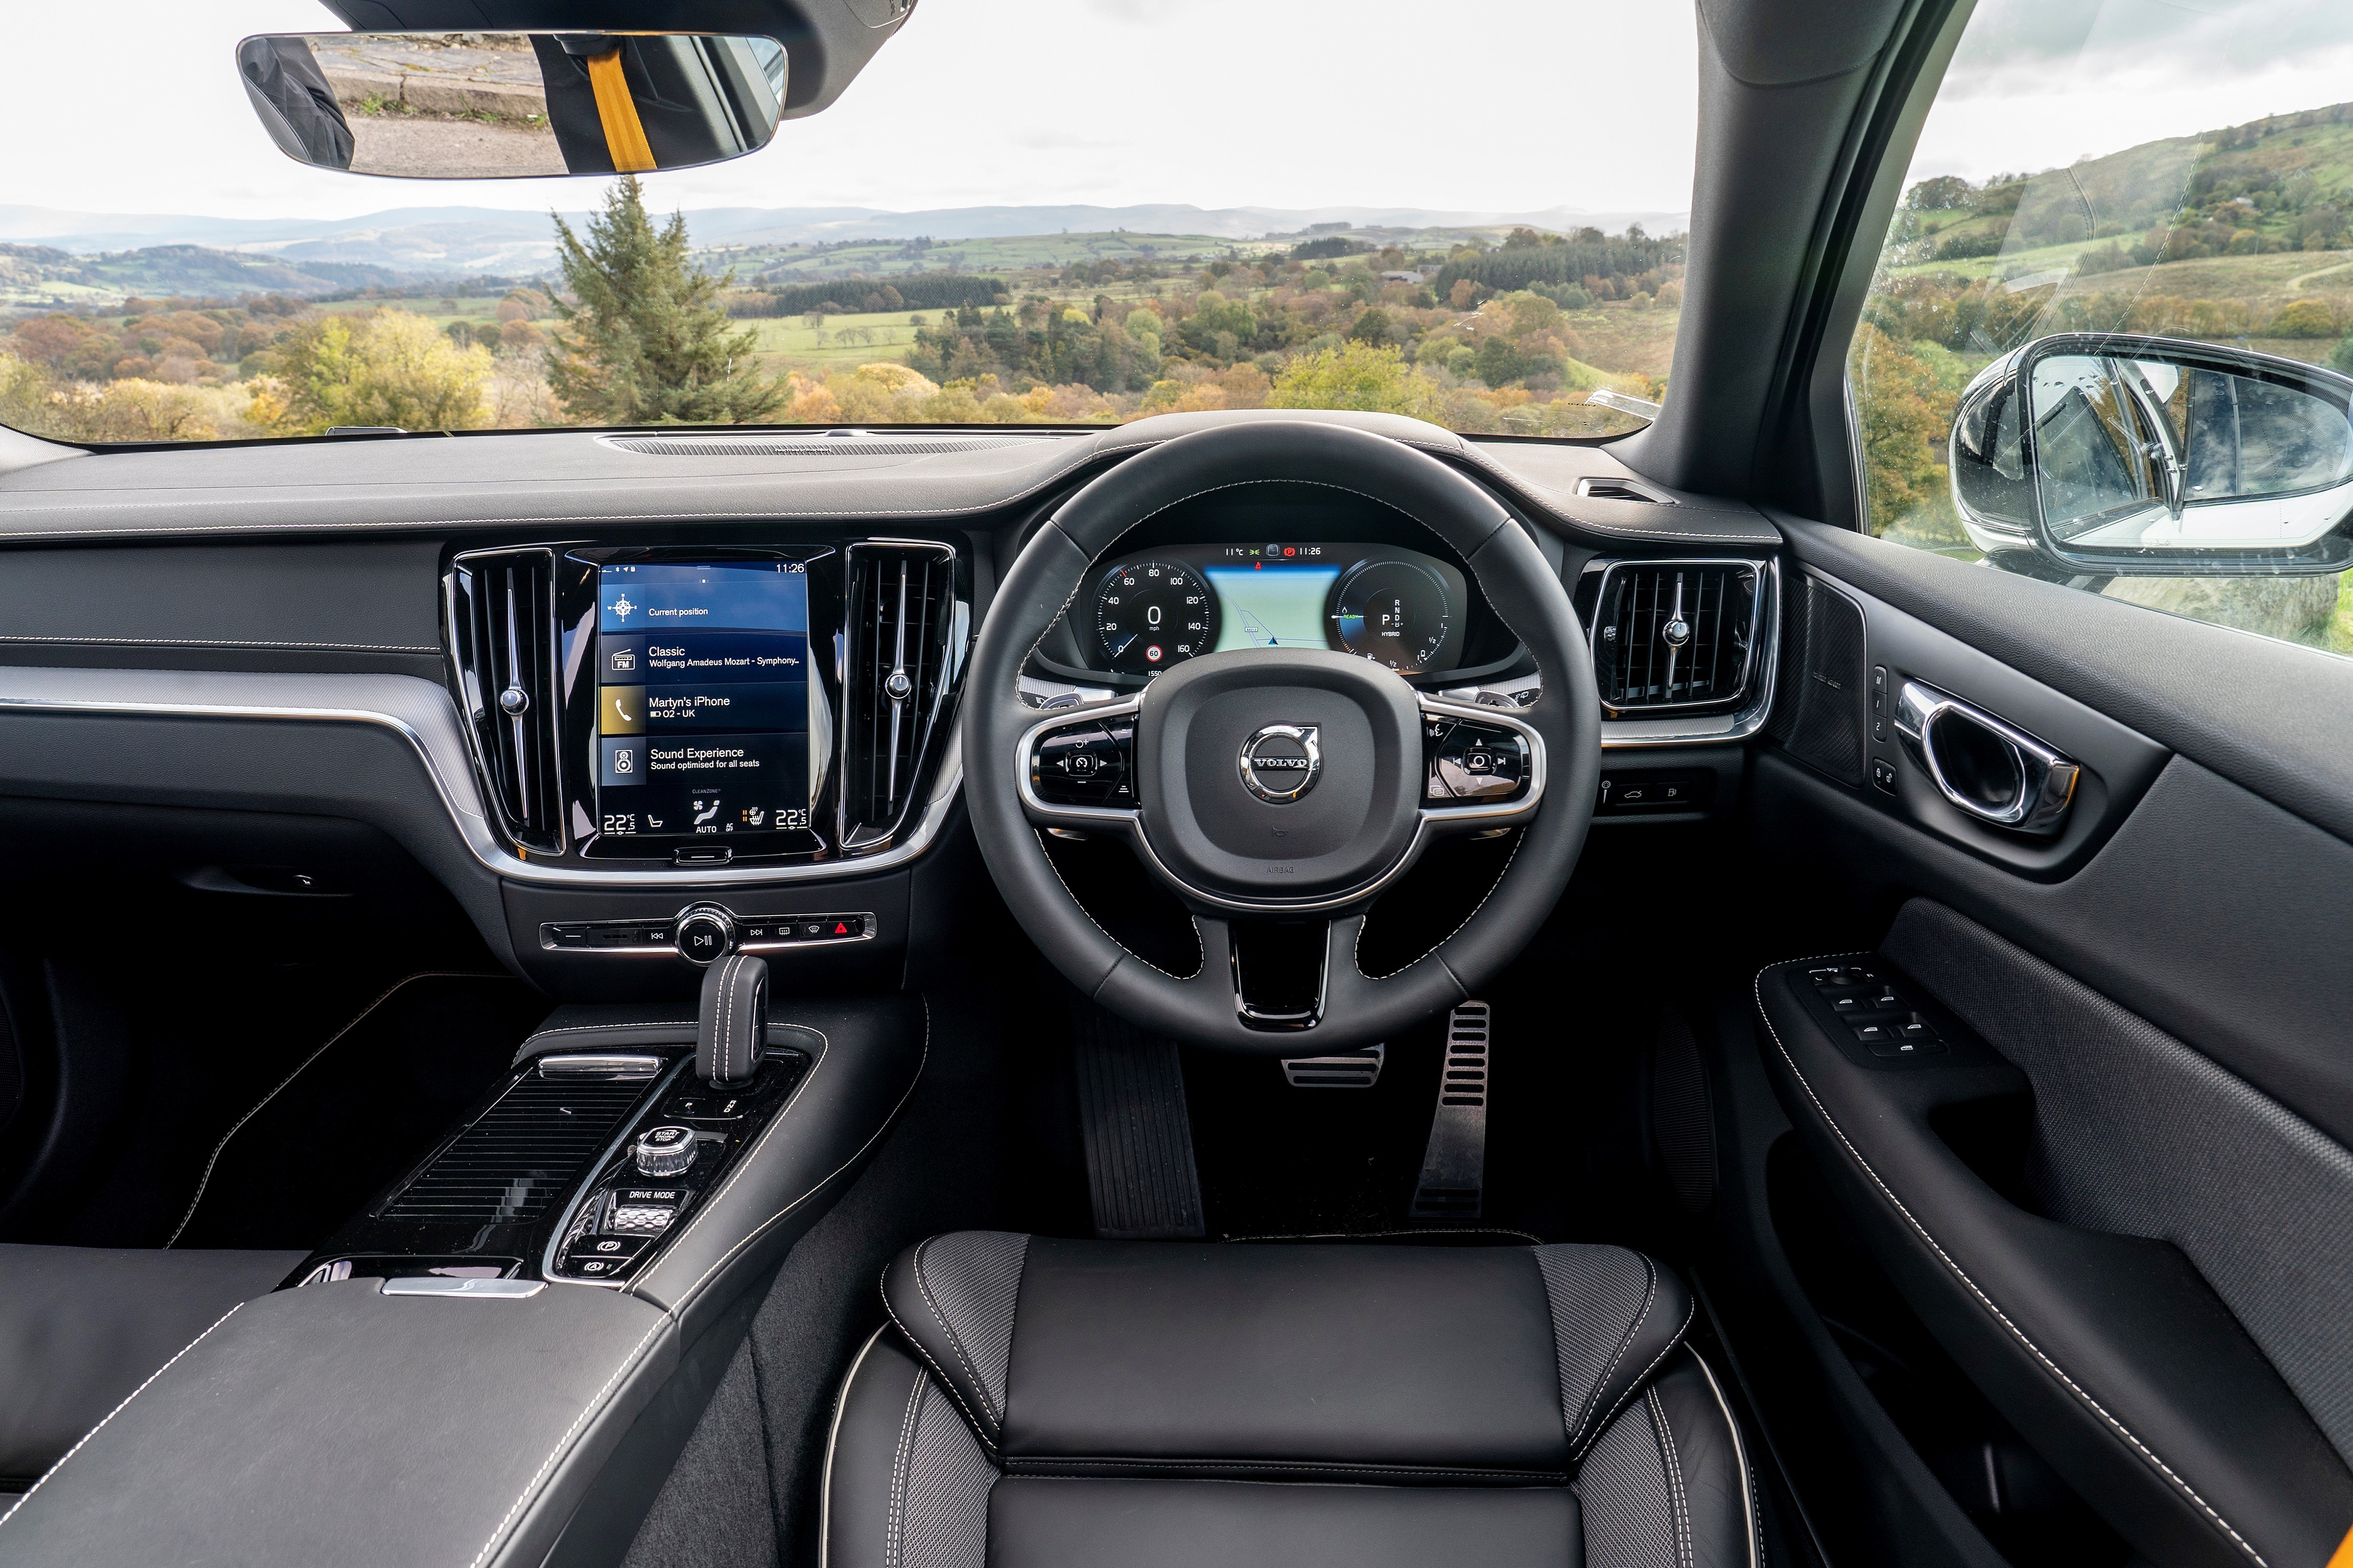 The interior of the car is largely the same as the standard V60's